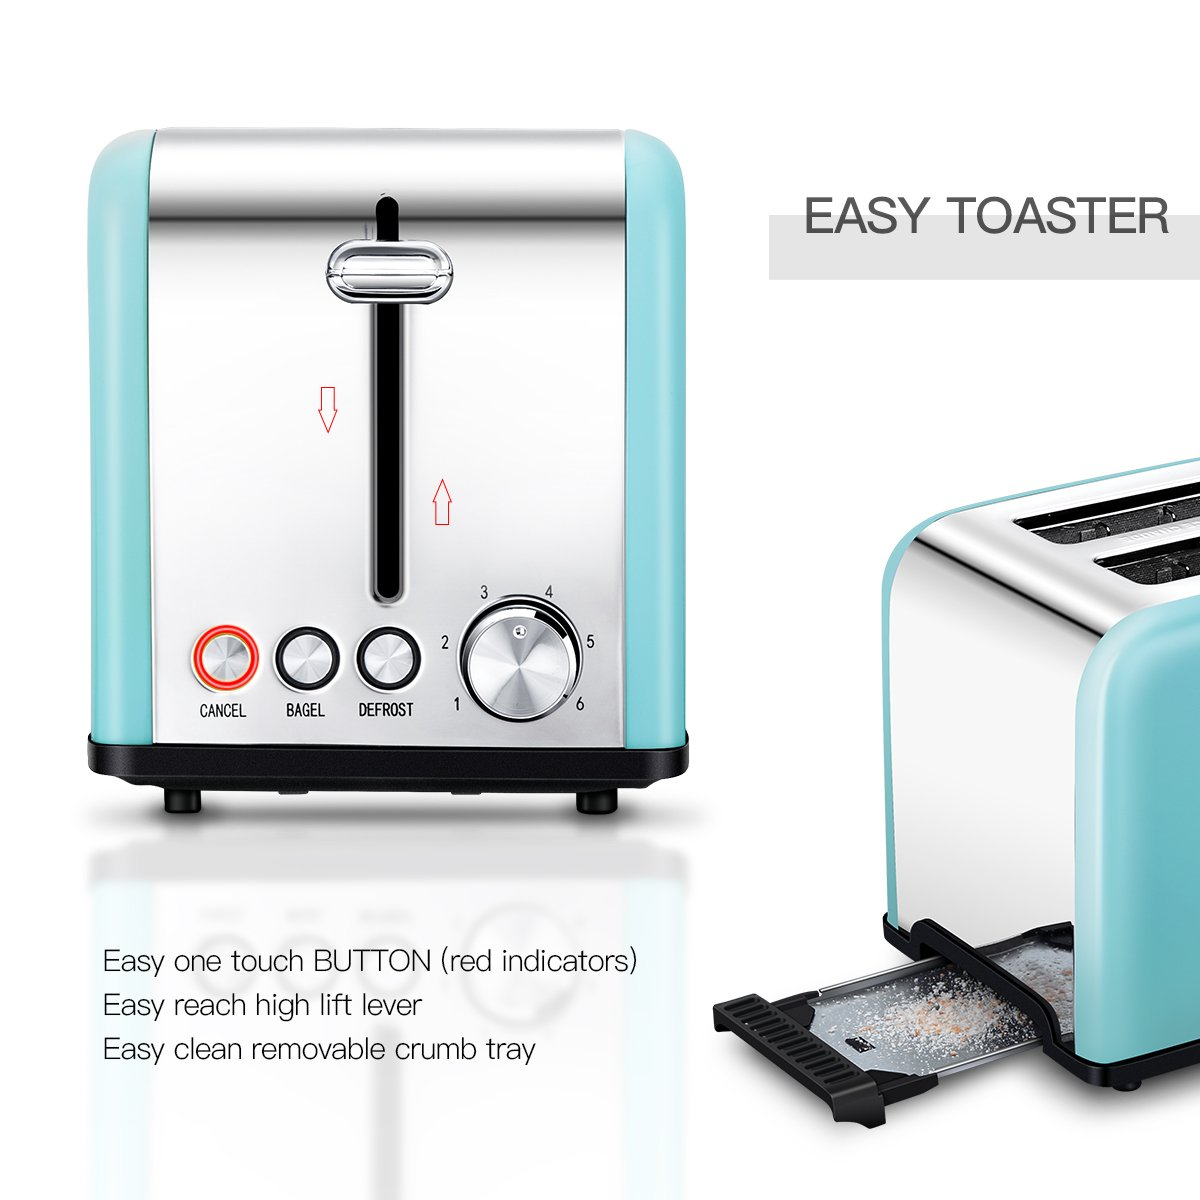 Toaster 2 Slice, Retro Small Toaster with Bagel, Cancel, Defrost Function, Extra Wide Slot Compact Stainless Steel Toasters for Bread Waffles, Blue by Keemo (Image #3)